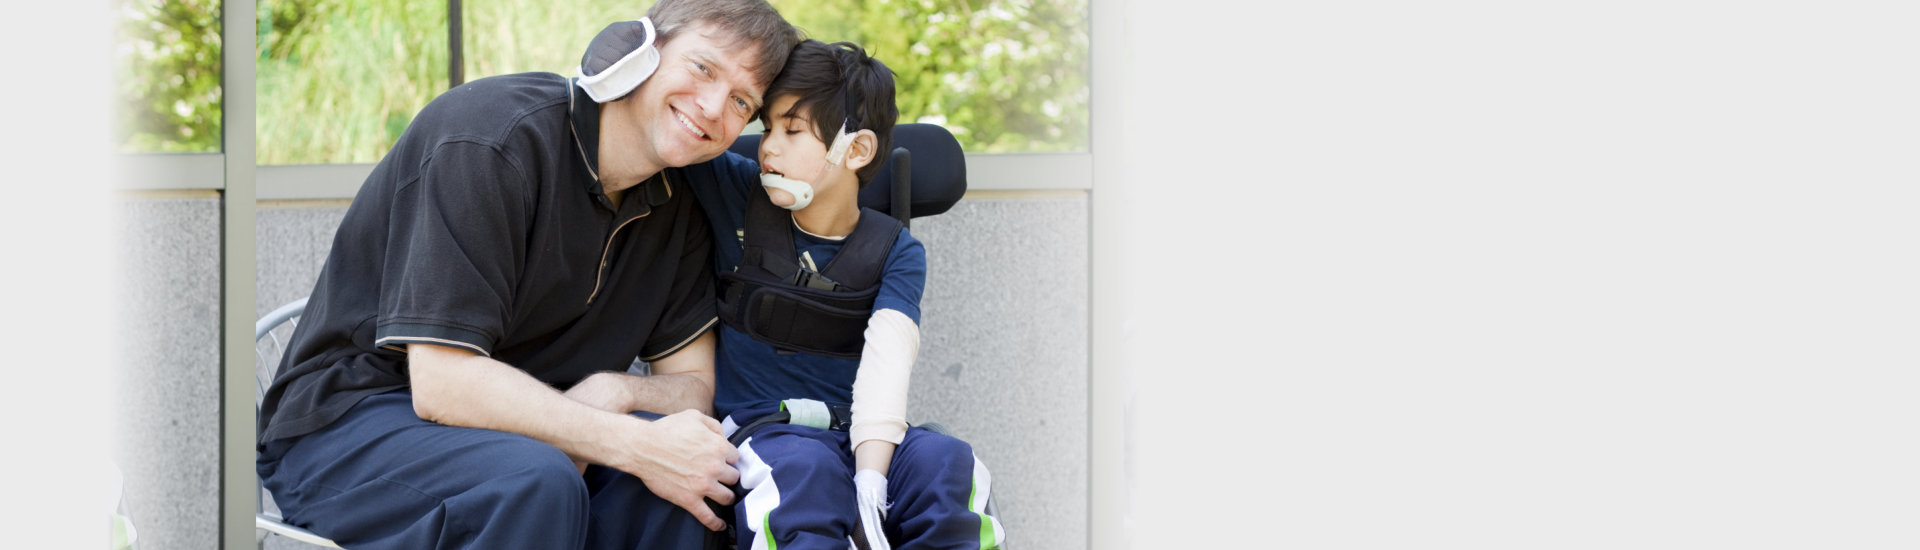 disabled boy hugging his father